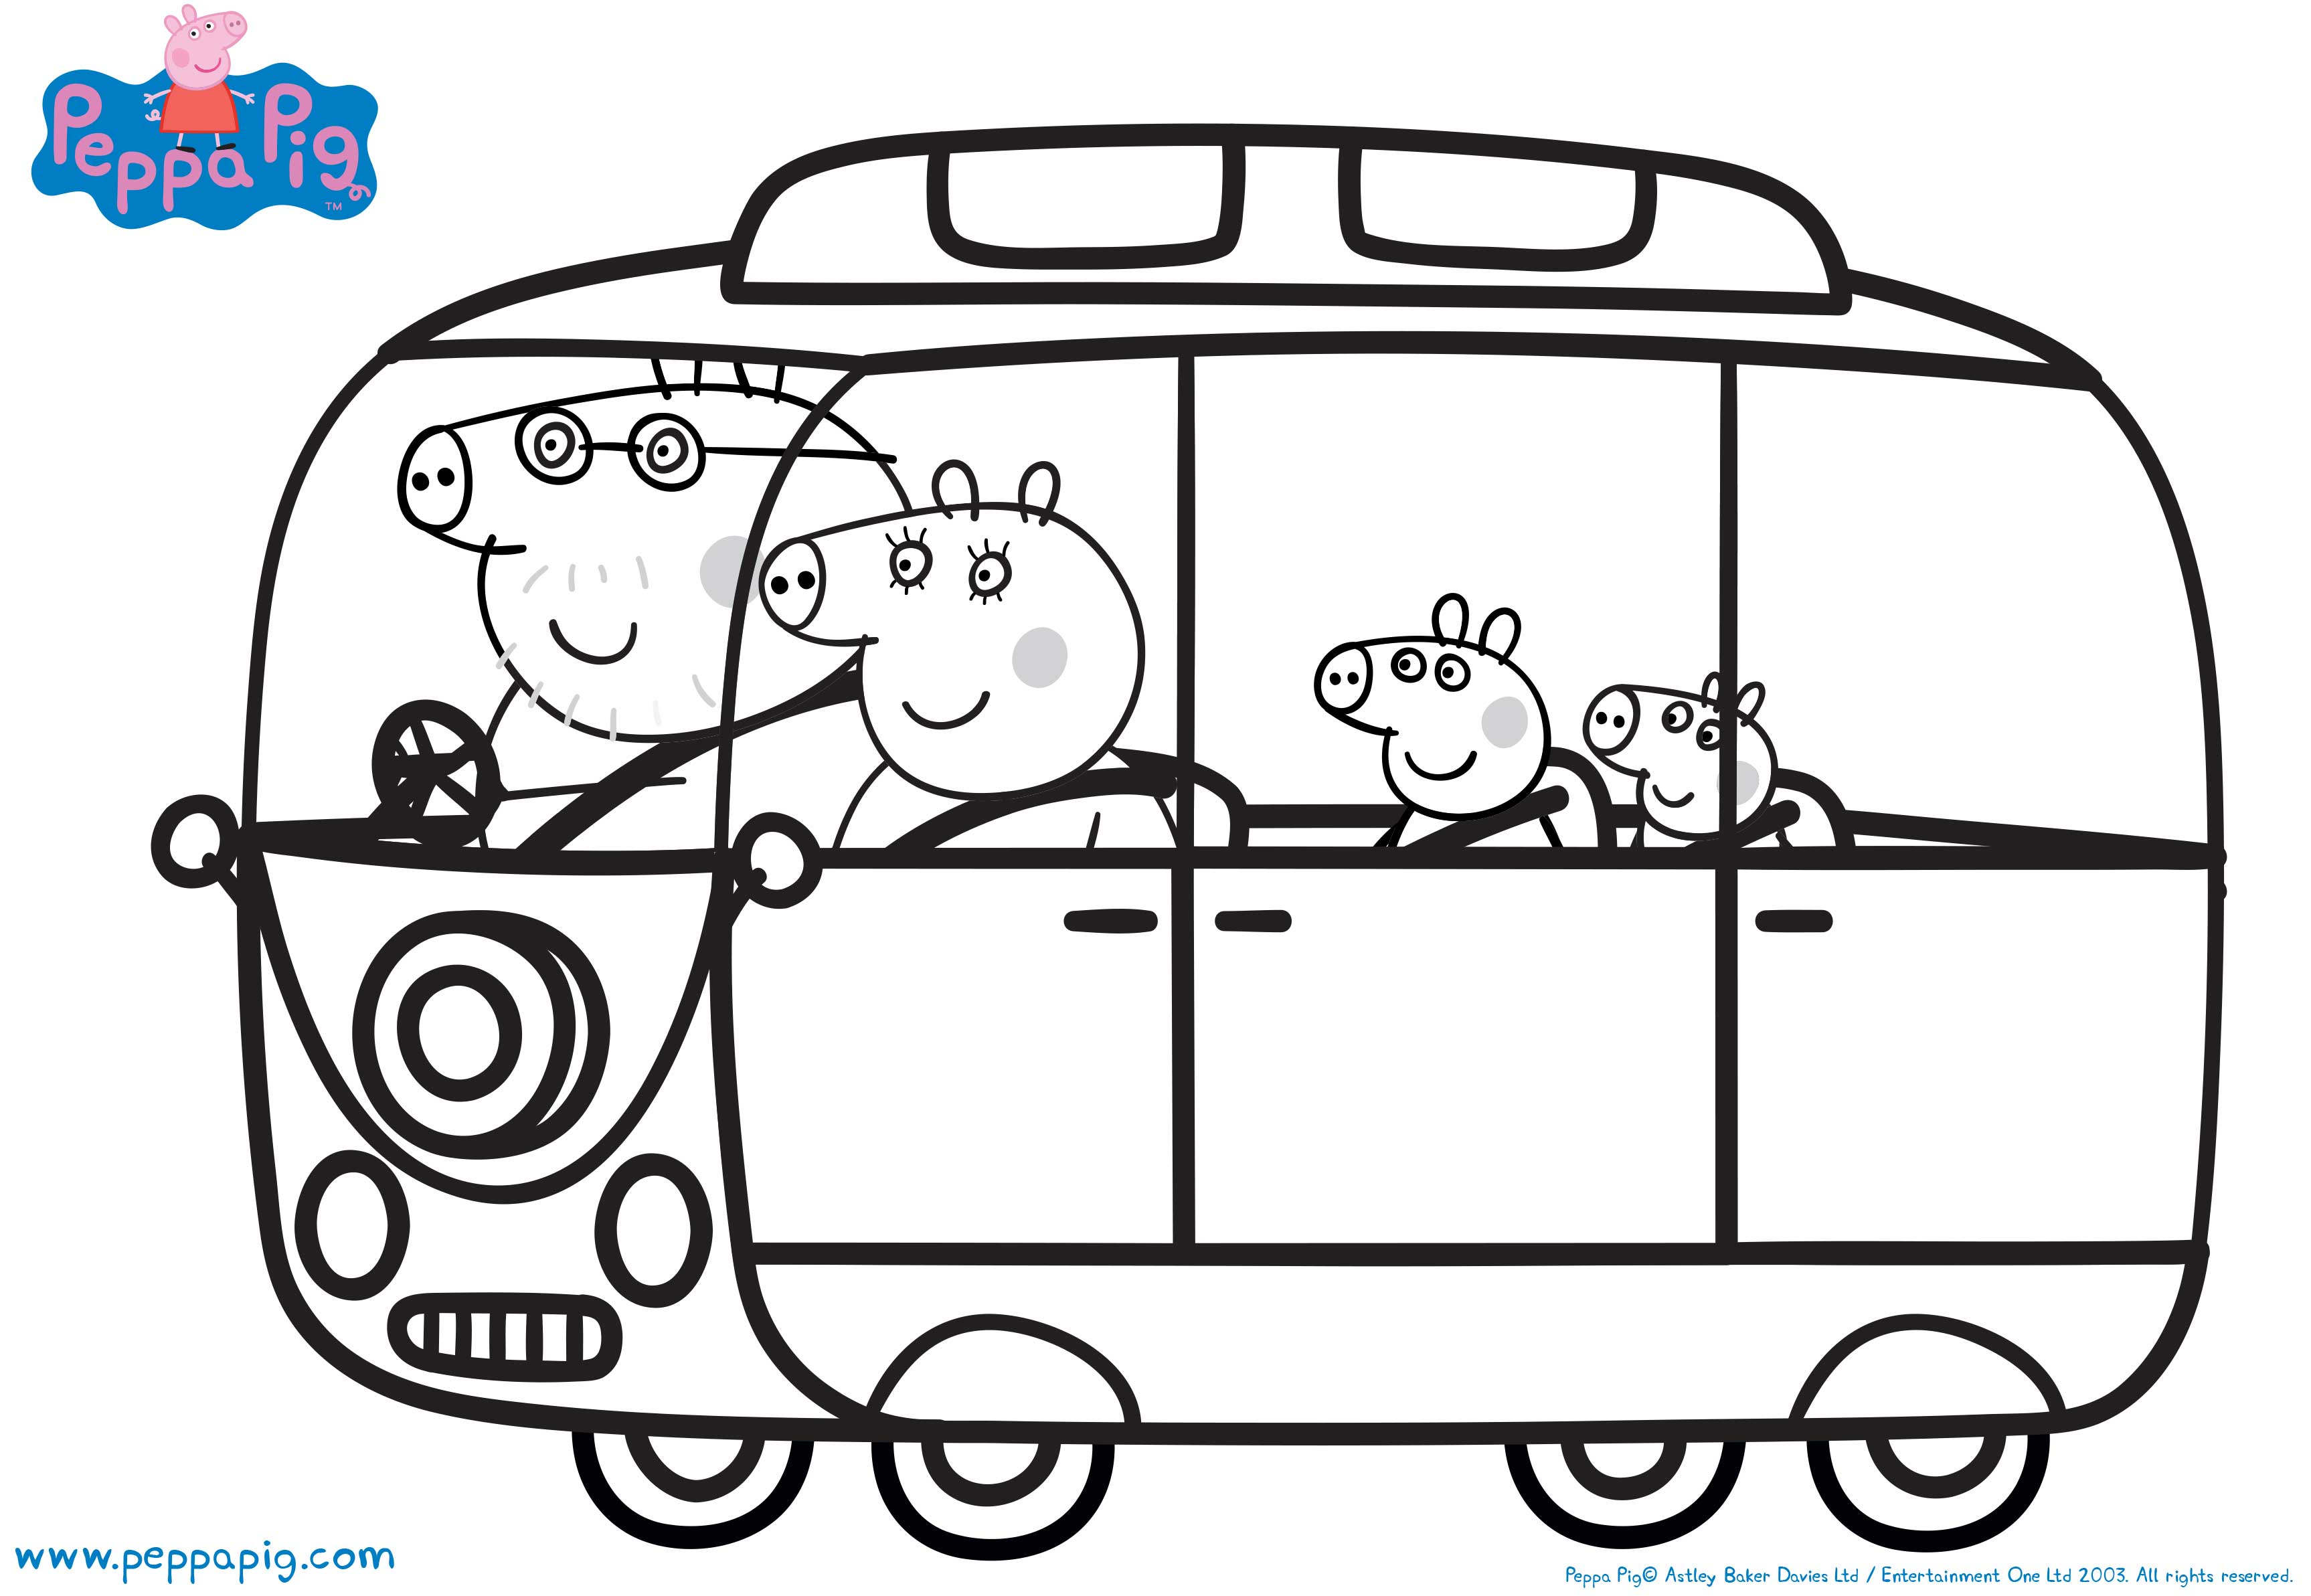 Colouring pages peppa -  Pig Hot Air Balloon Peppa Pig Colouring Page 4 Peppa Pig Colouring Page 2 Peppa Pig Bird Feeder Peppa Pig Bubble Painting Peppa Pig Bug Hunt Peppa Pig